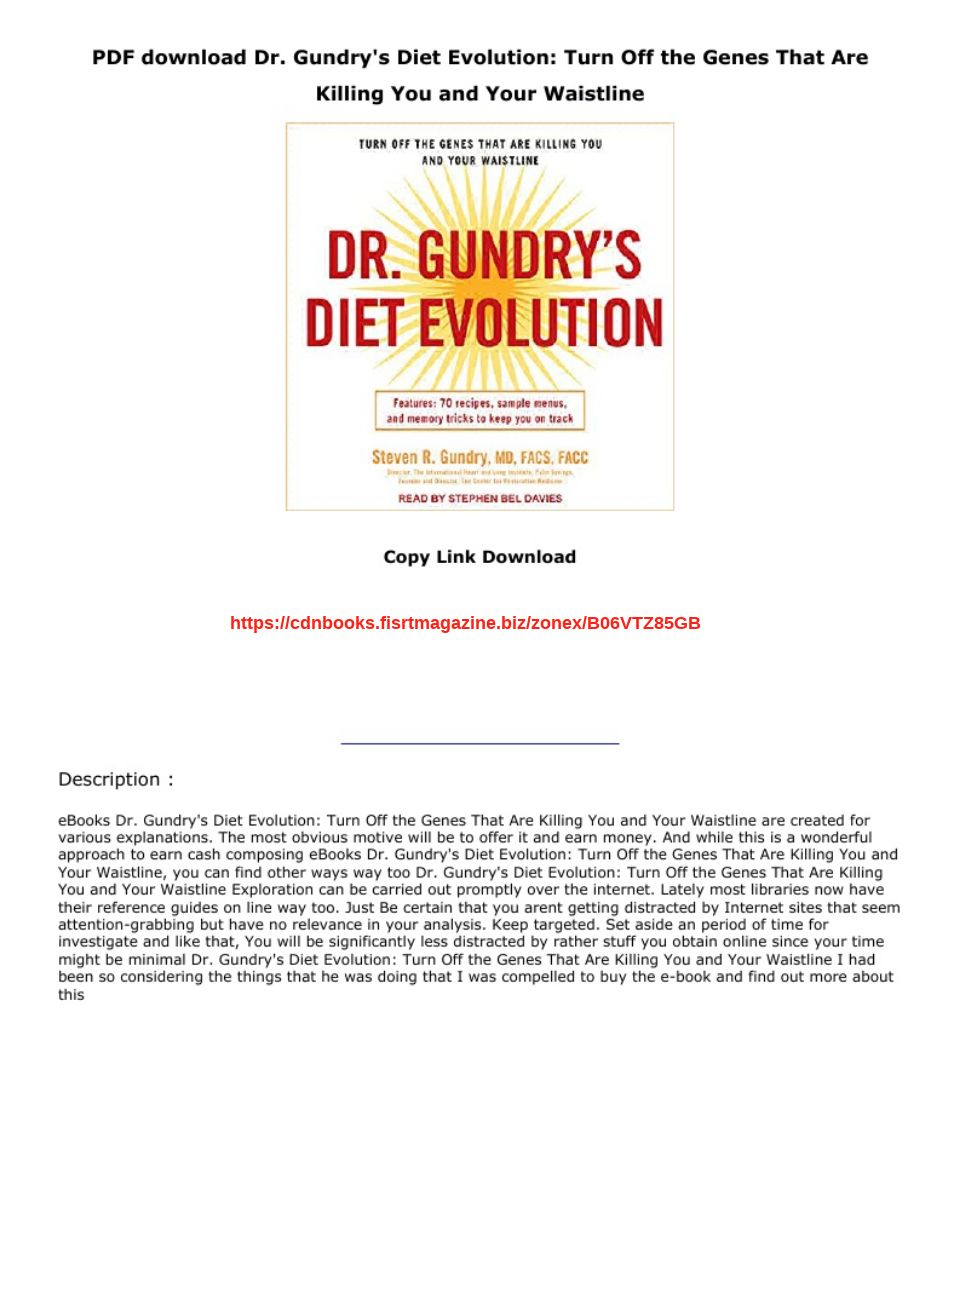 Dr Gundry Diet Evolution Pdf Download